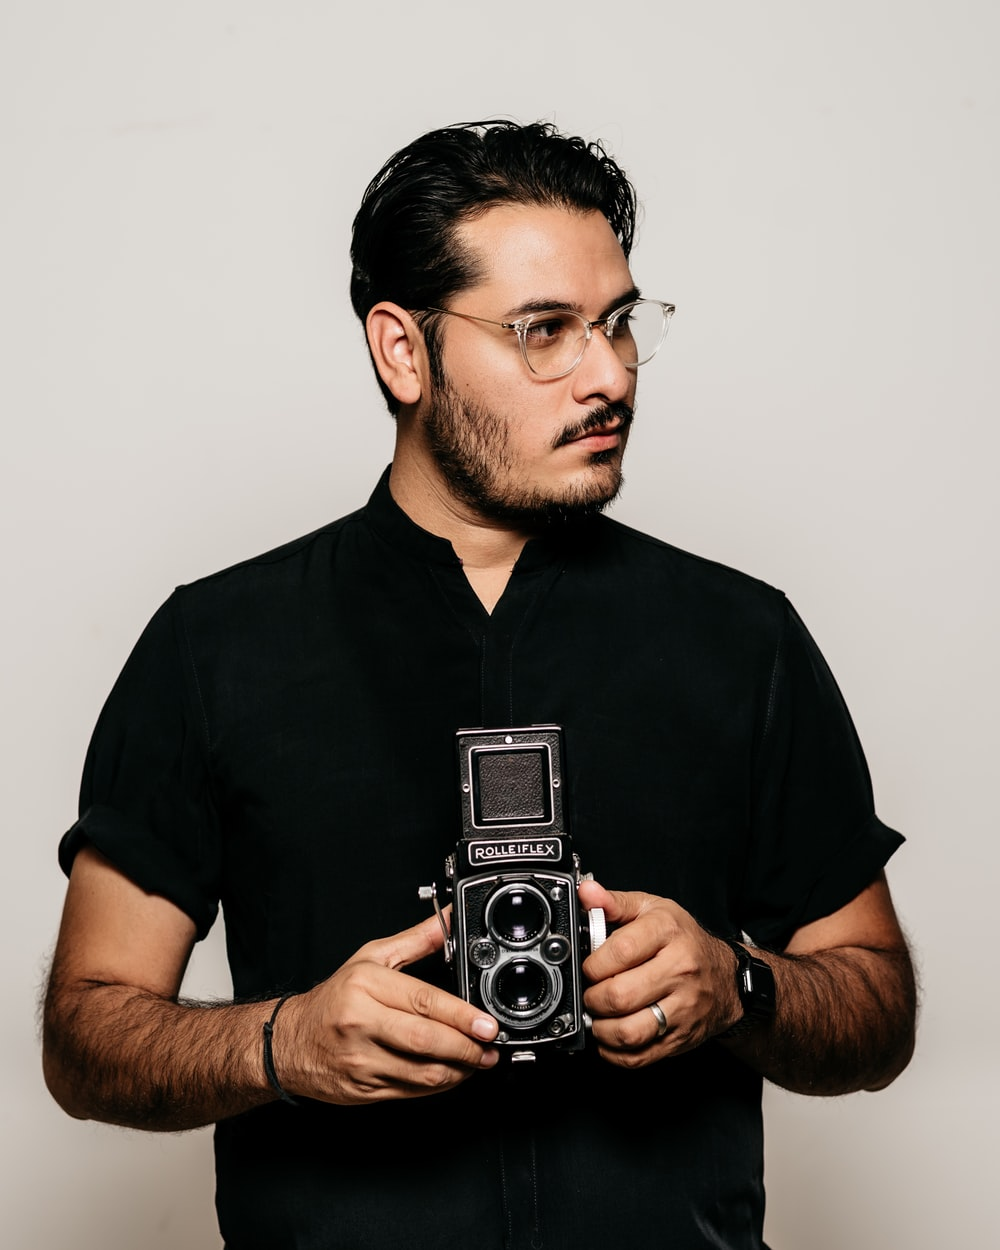 man in black crew neck t-shirt holding silver camera